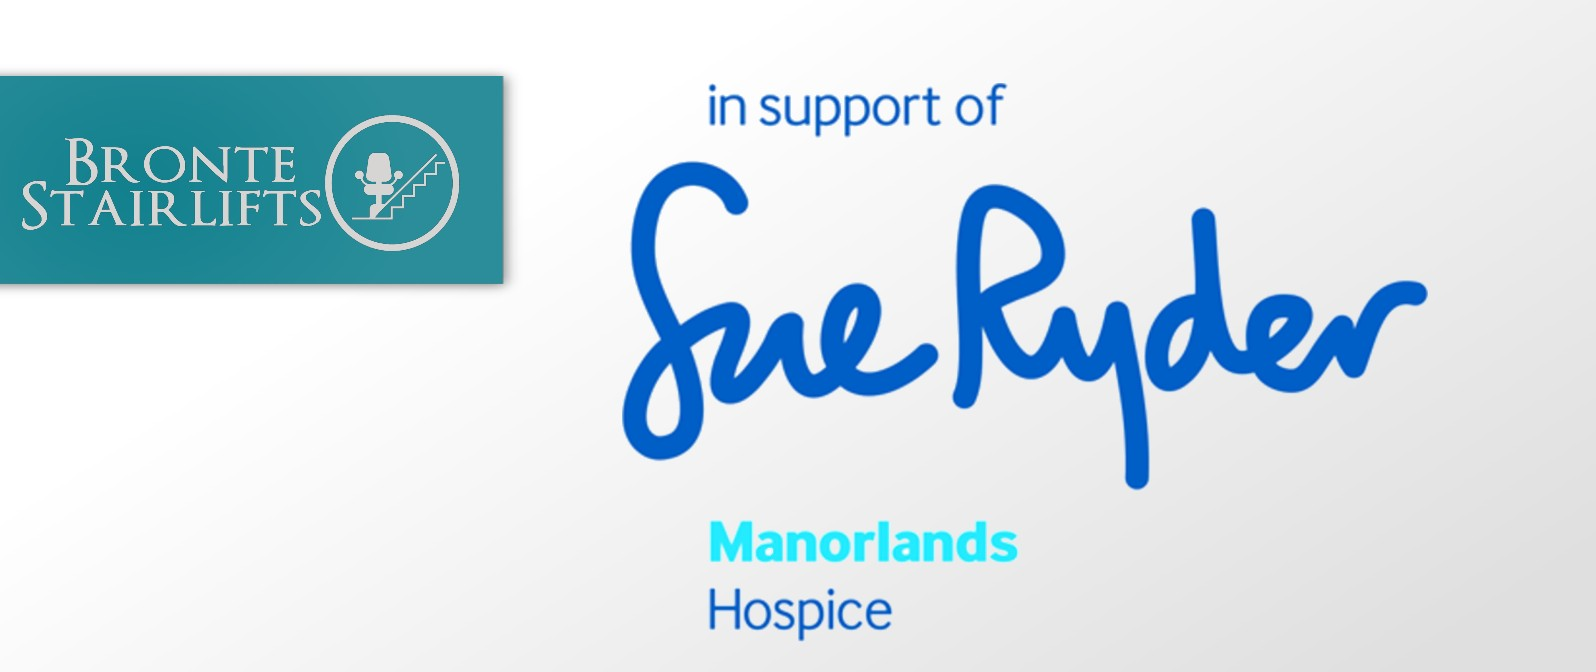 Bronte Stairlifts are proud to support Manorlands Sue Ryder Hospice